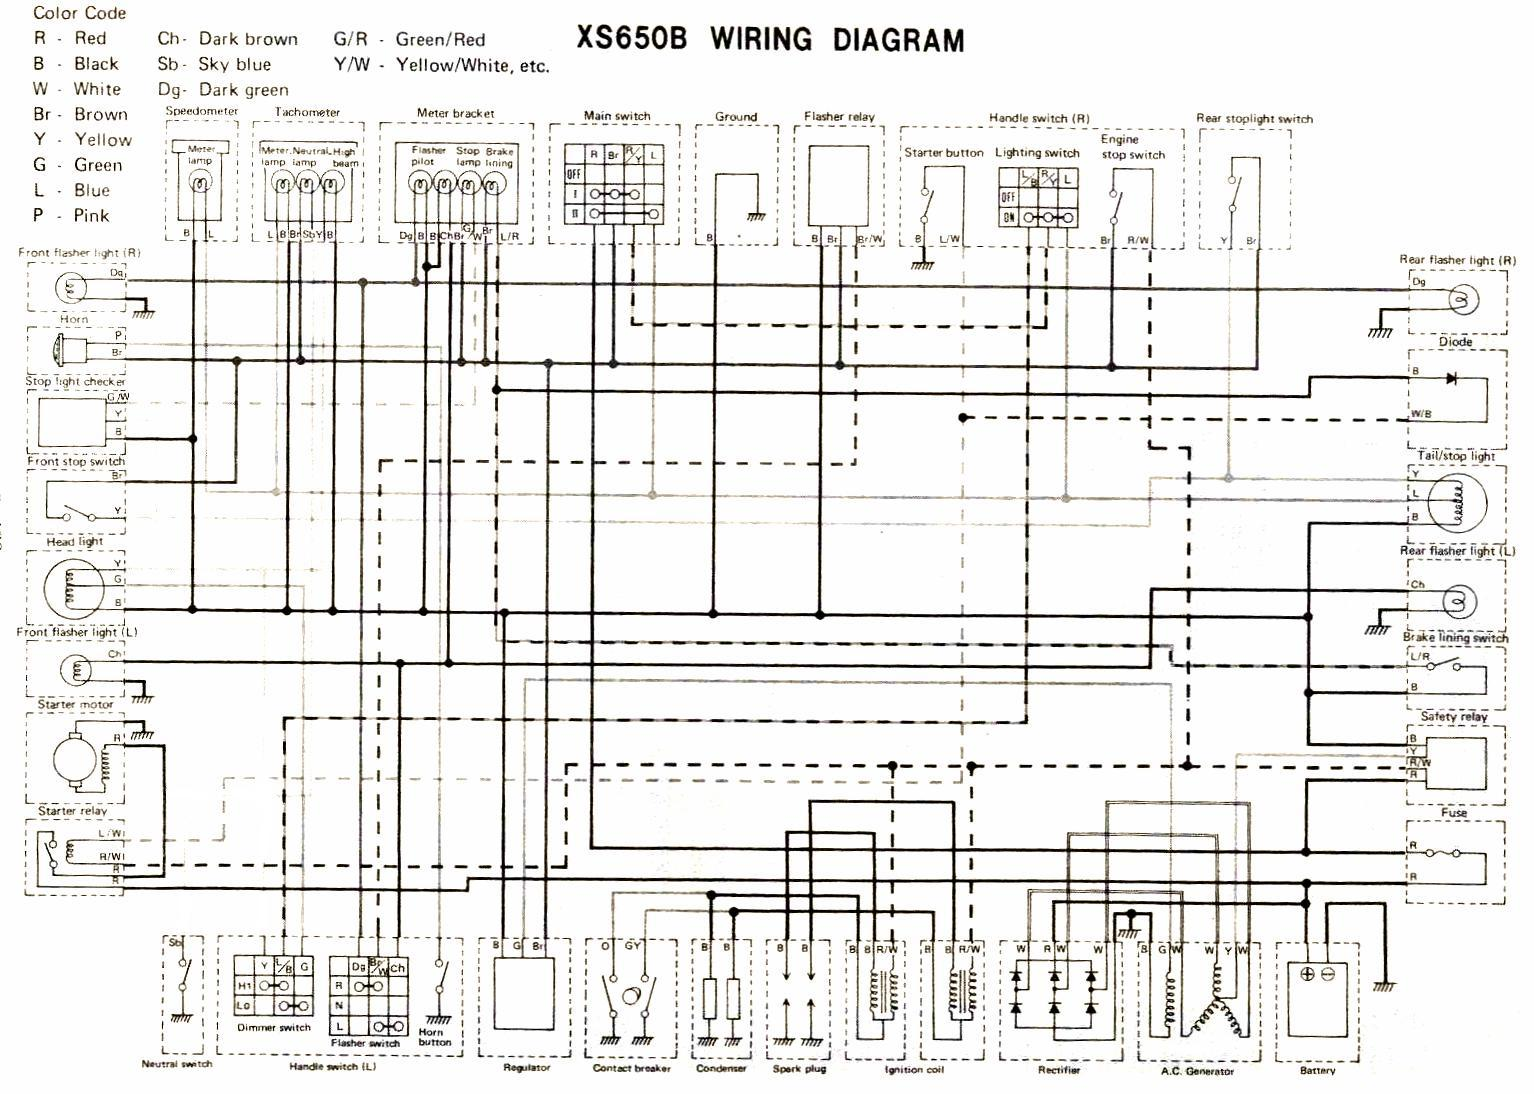 75XS650B wiring diagrams 1983 yamaha xs650 wiring diagram at bakdesigns.co